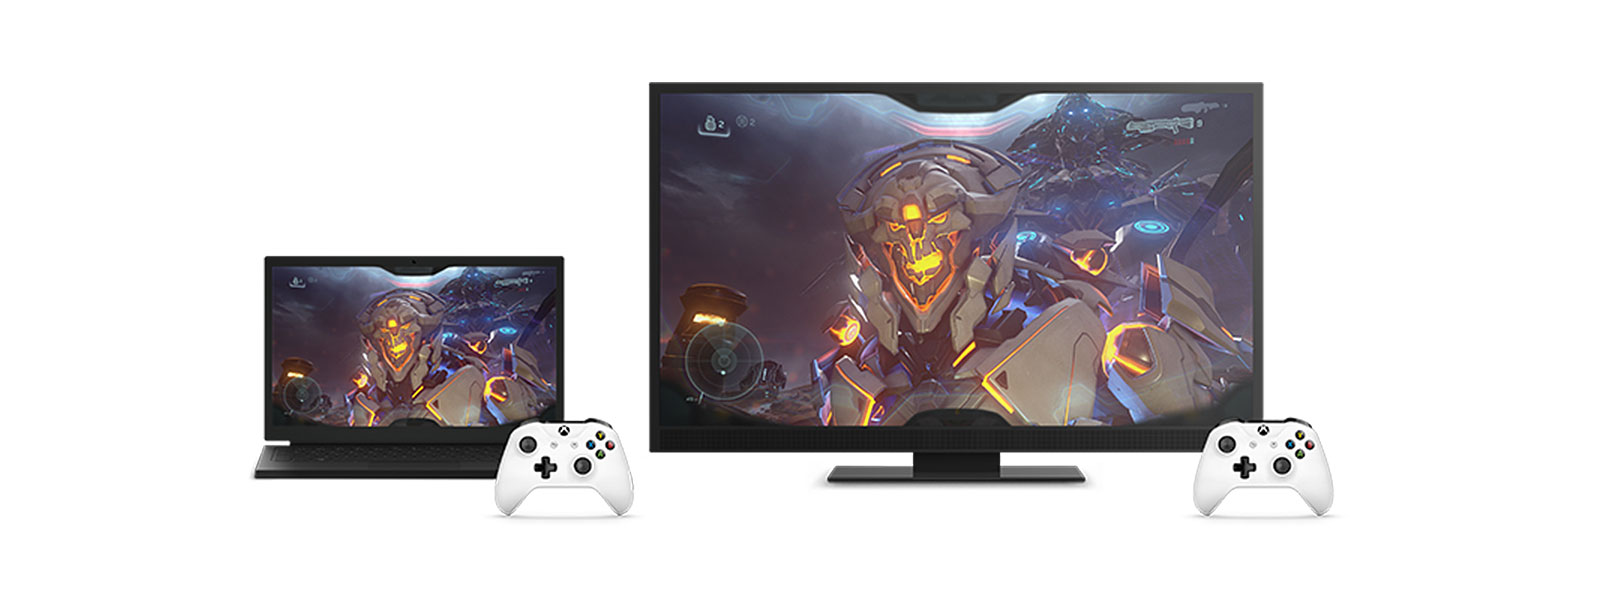 Desktop and laptop PCs with controllers